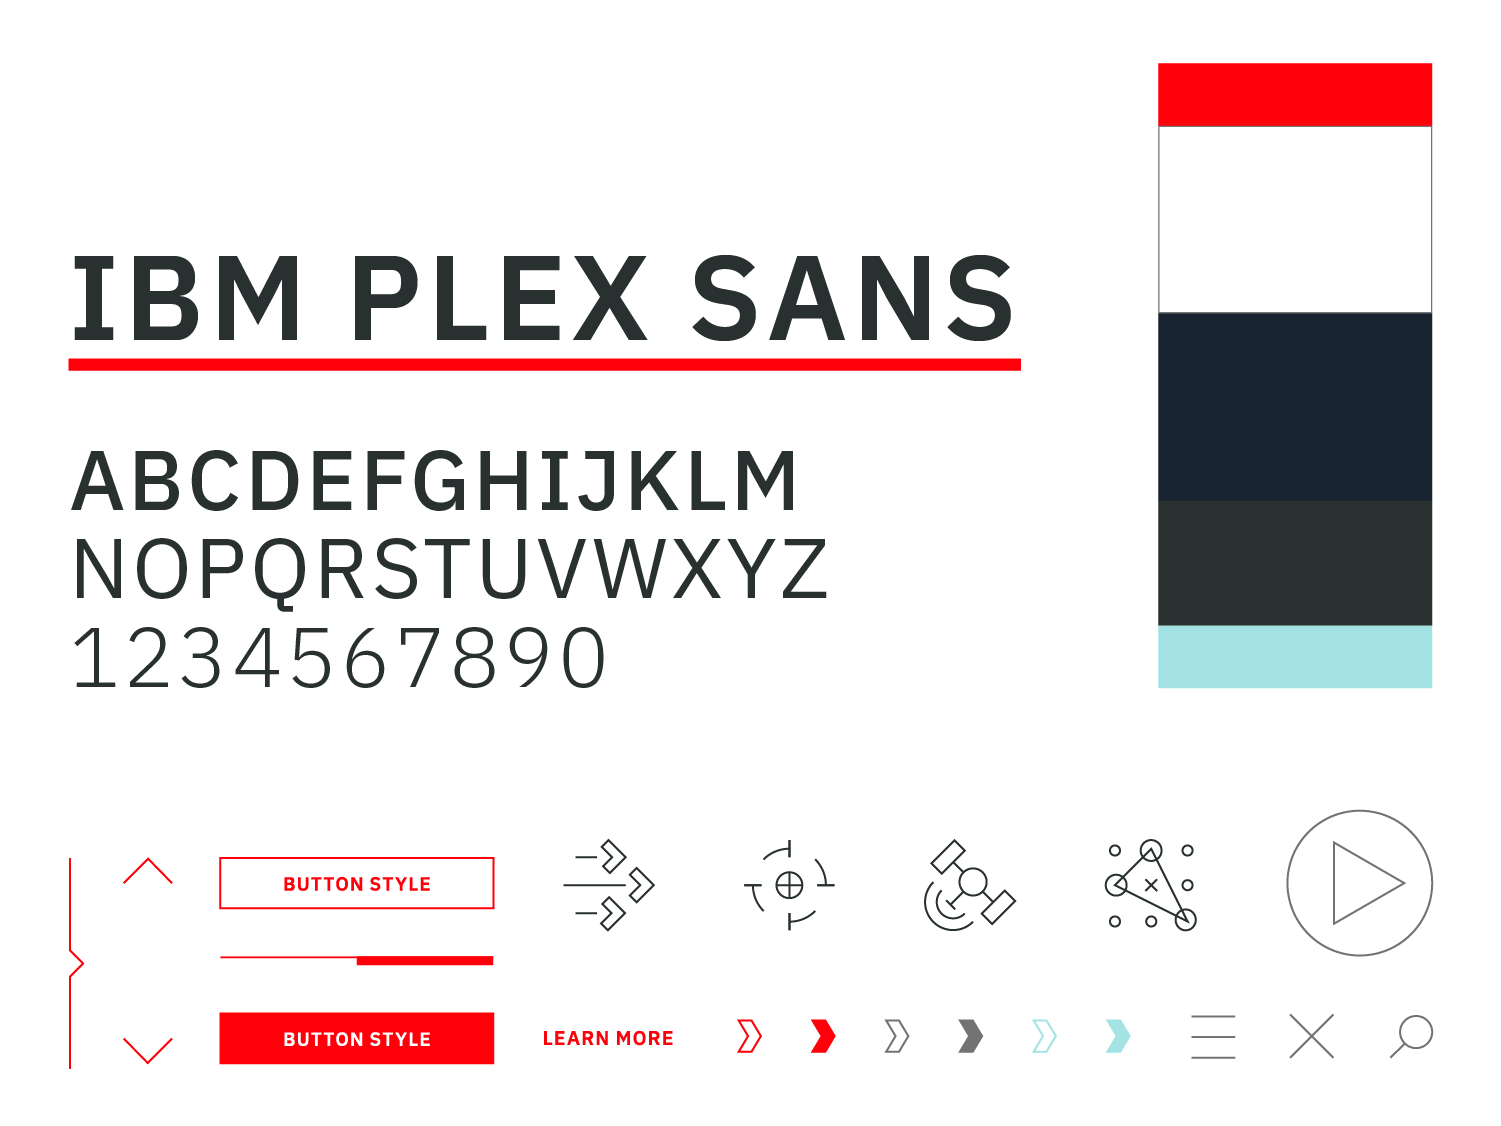 Colors, type, and graphic styles for L3Harris